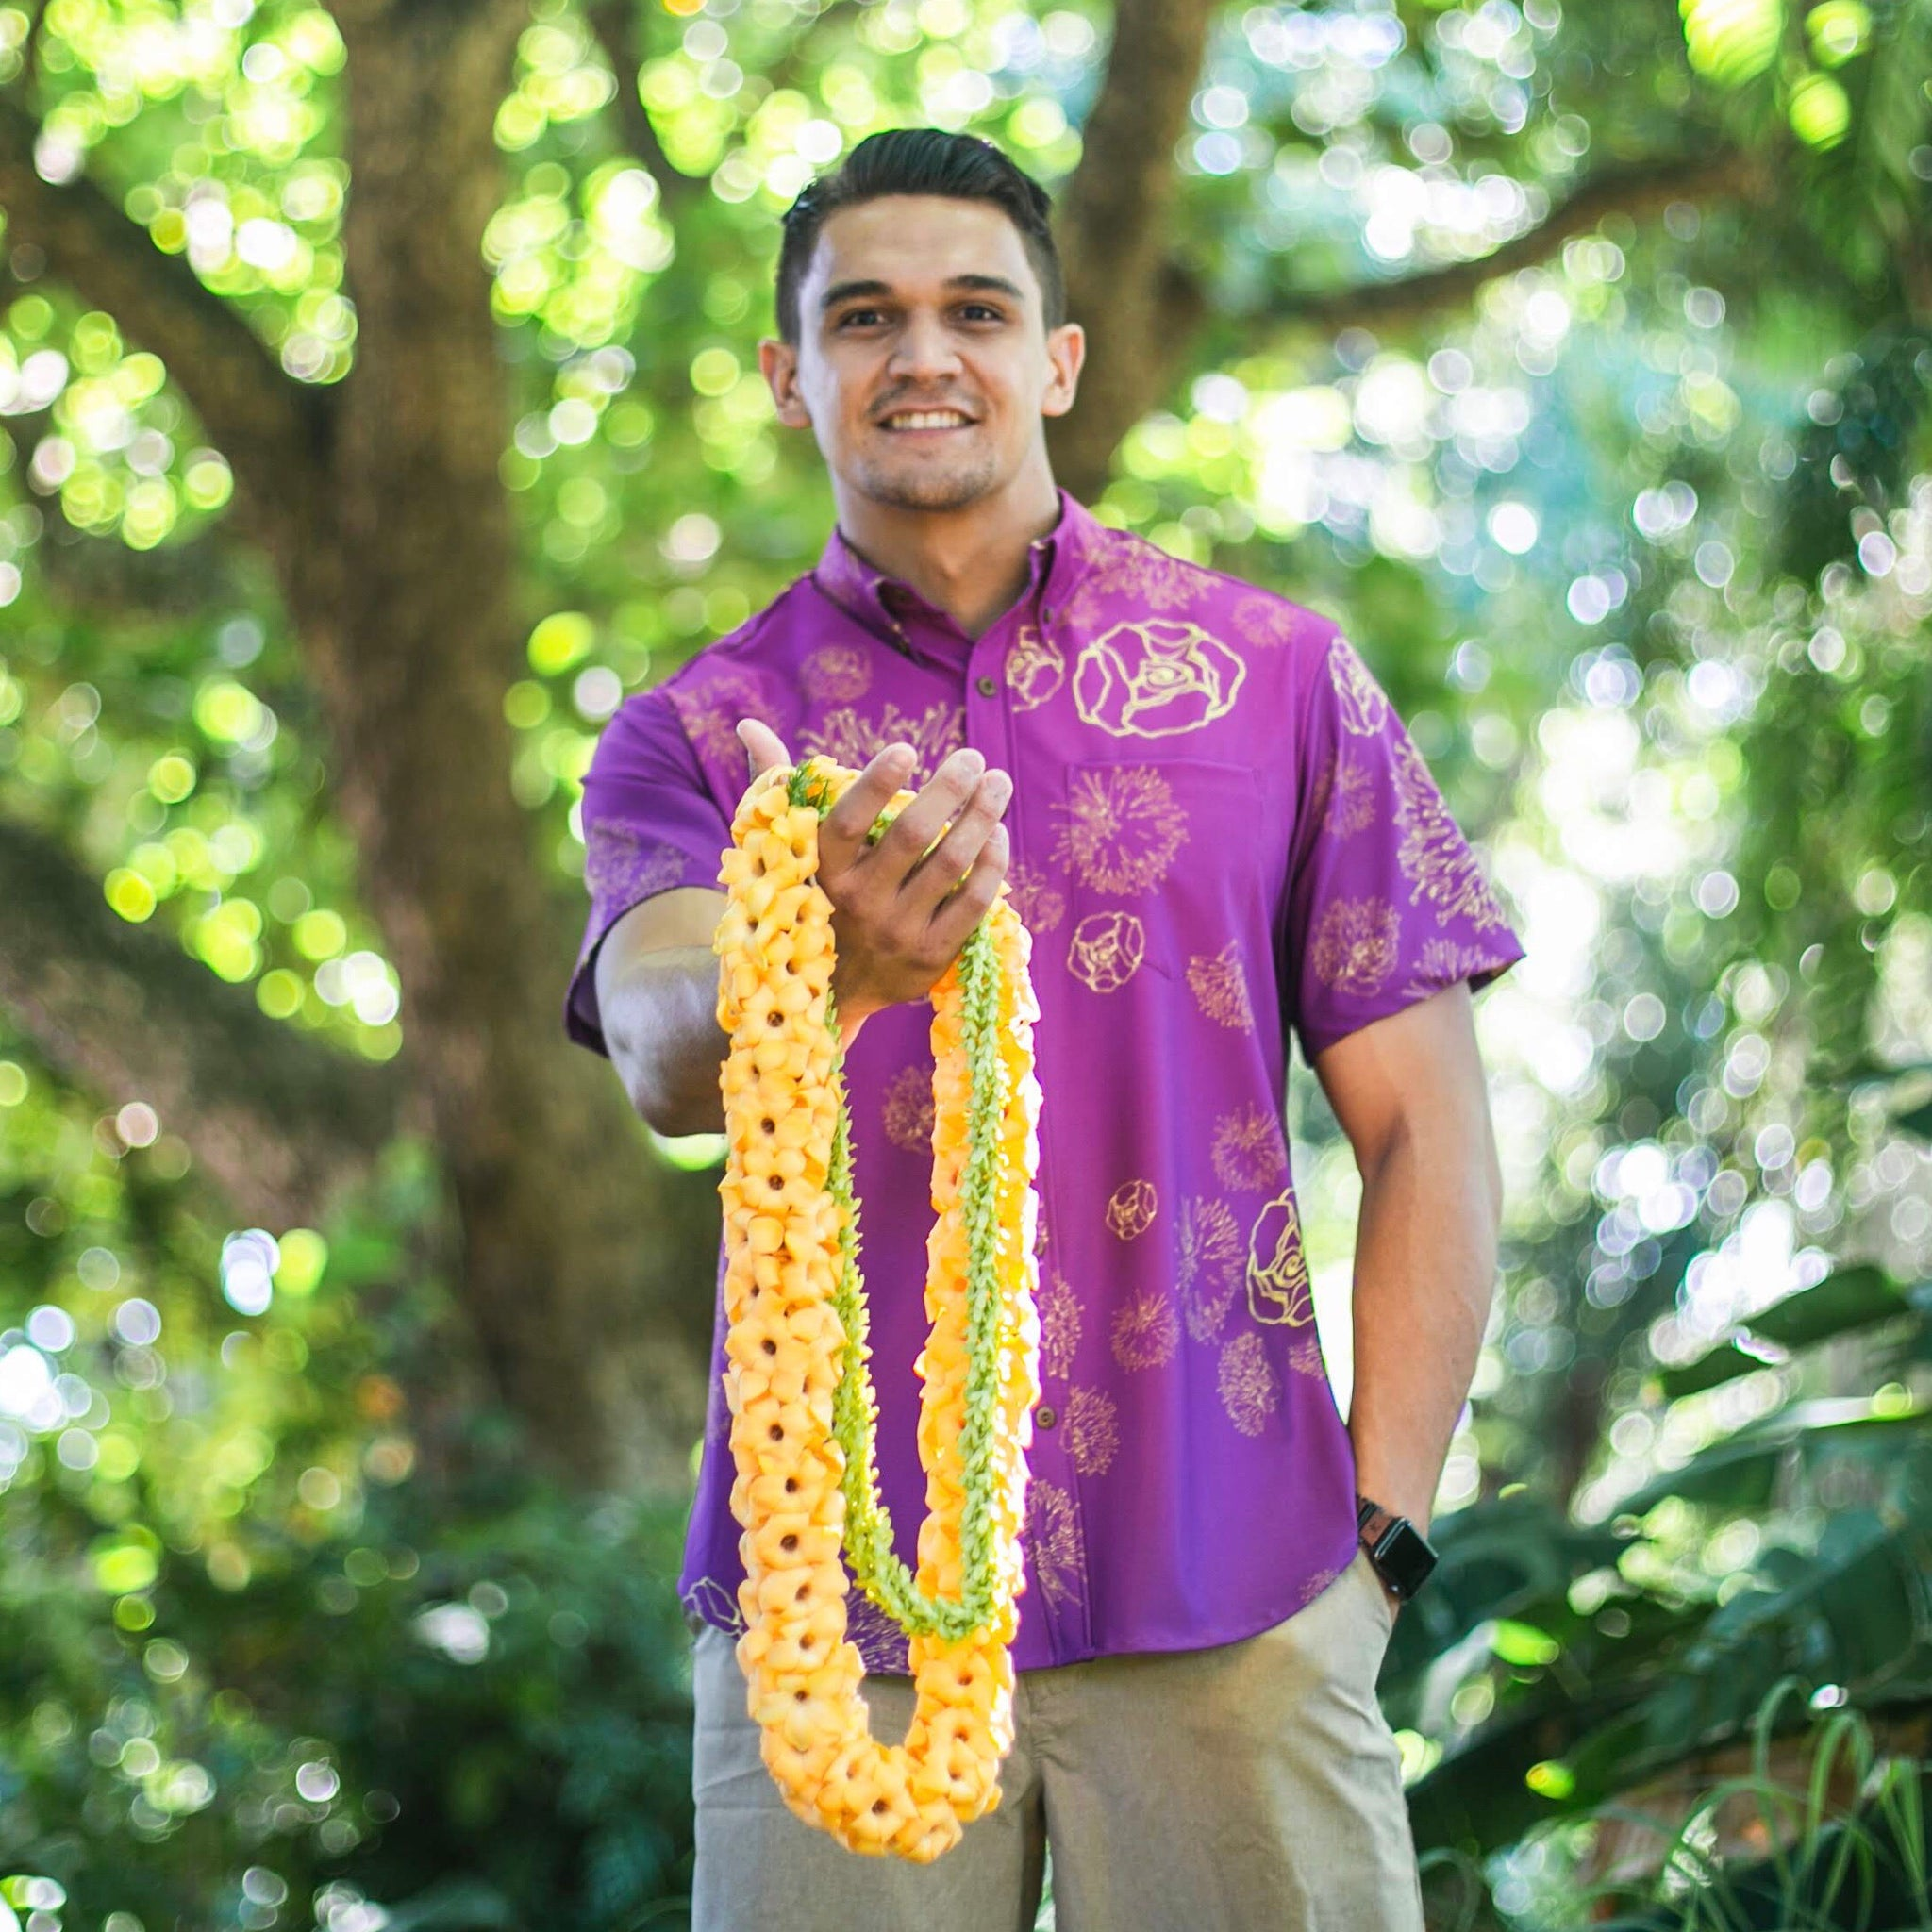 Men's Shirt: Kaʻōpua Shirt, Stretch Microfiber, Lehua Blossoms, Purple/Yellow